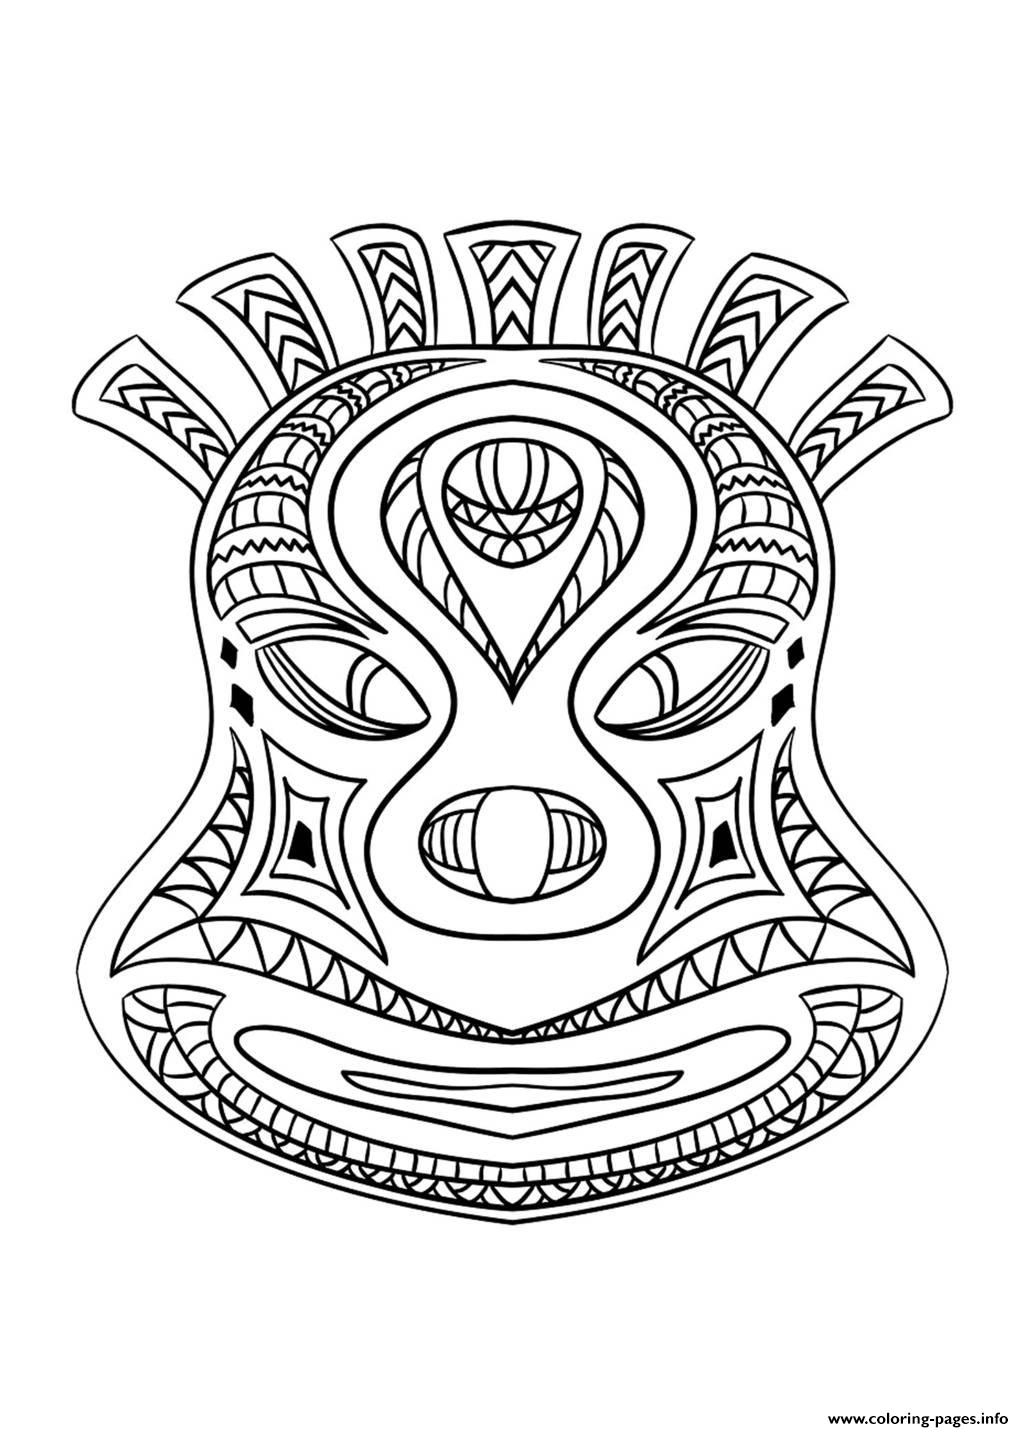 Adult African Mask 2 Coloring Pages Printable à Dessin Masque Africain